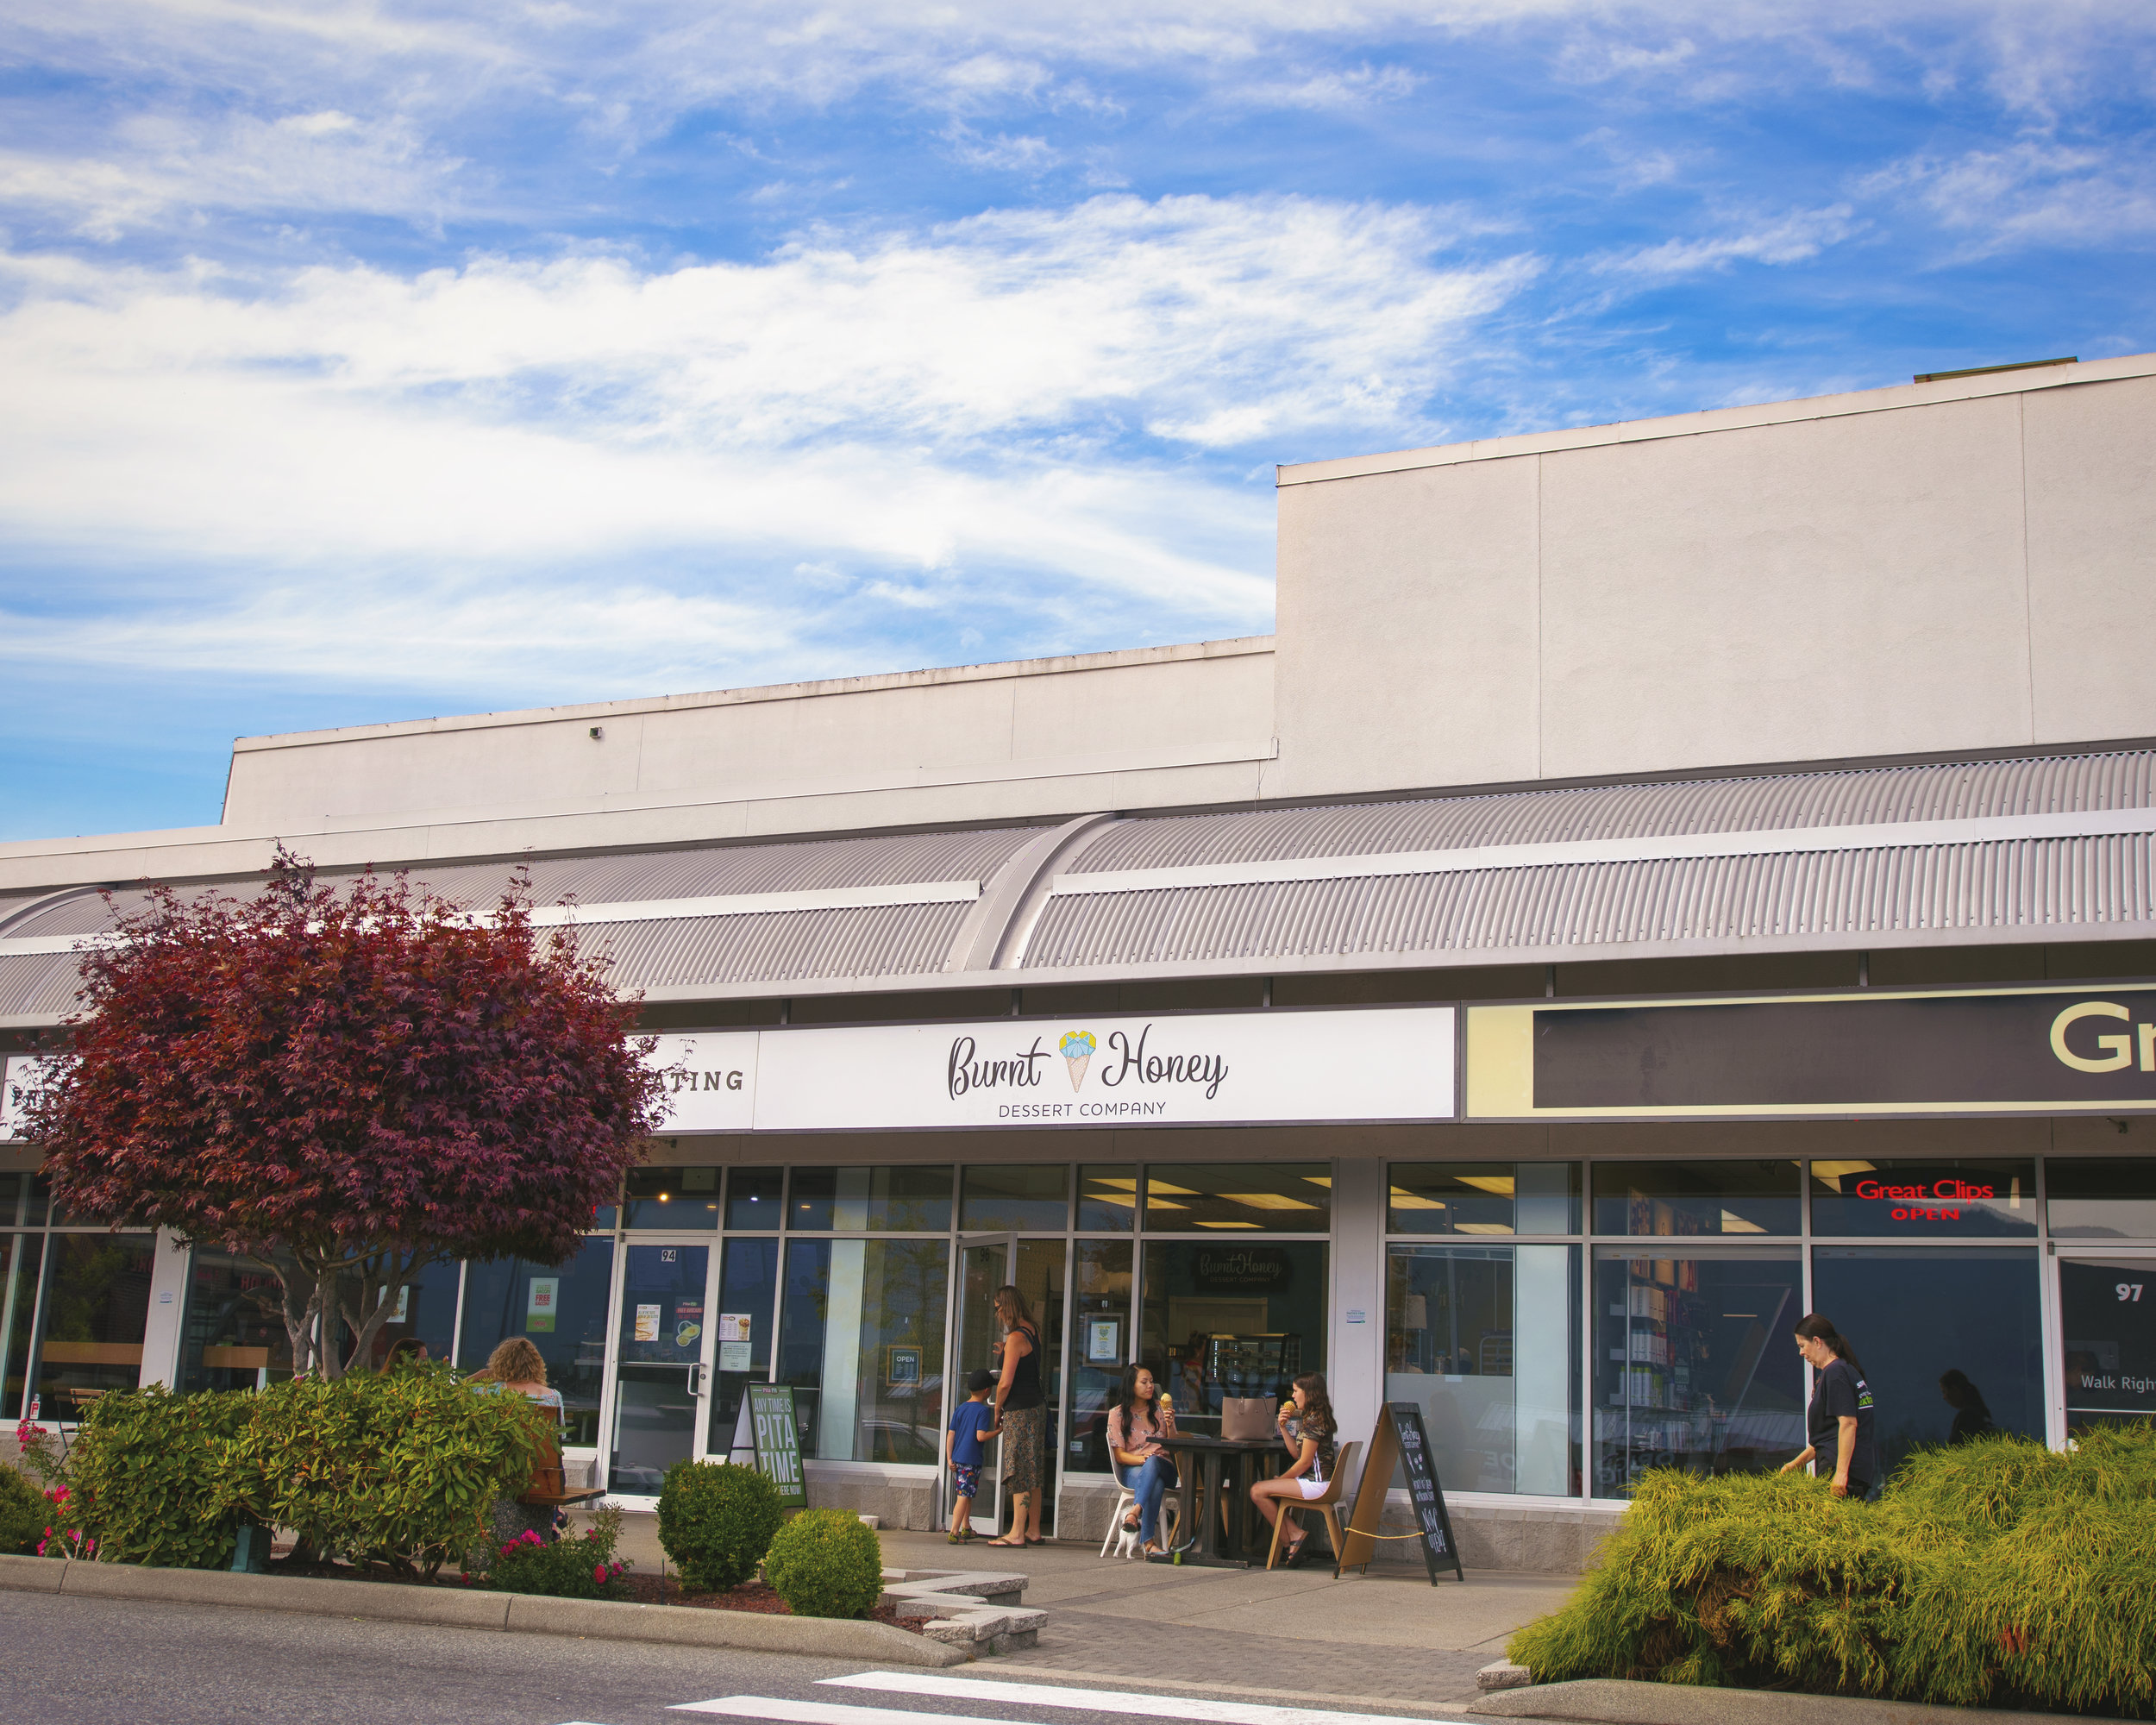 Come on in! - We look forward to hosting you at Burnt Honey!We are located at 96 - 3200 North Island Highway at Country Club Centre in Nanaimo, British Columbia.Our current hours are:Monday: 12pm-7pmTuesday: 12pm-7pmWednesday: 12pm-7pmThursday: 12pm-7pmFriday: 12pm-9pmSaturday: 12pm-9pmSunday: 12pm-7pmHope to see you soon!